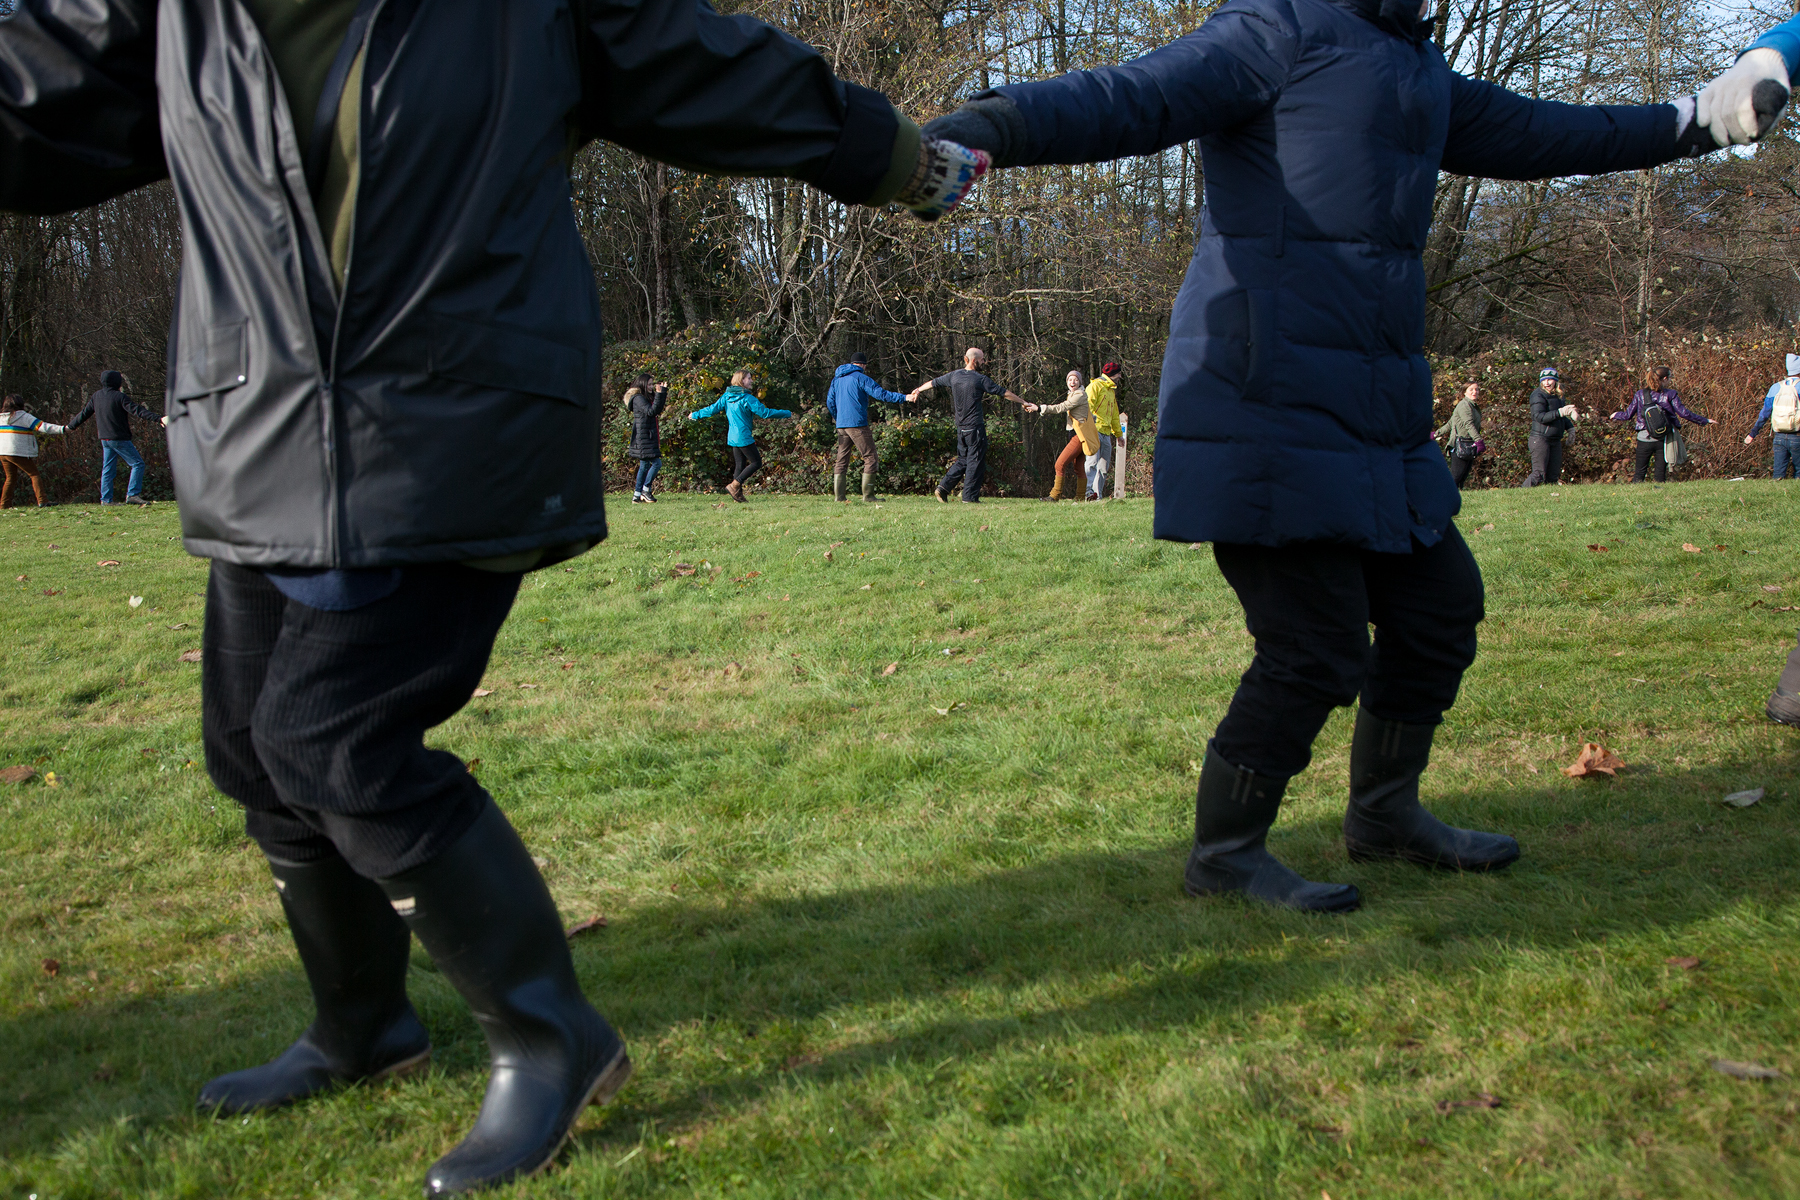 Protestors dance in joy as Kinder Morgan runs out of time to survey and leaves the mountain.